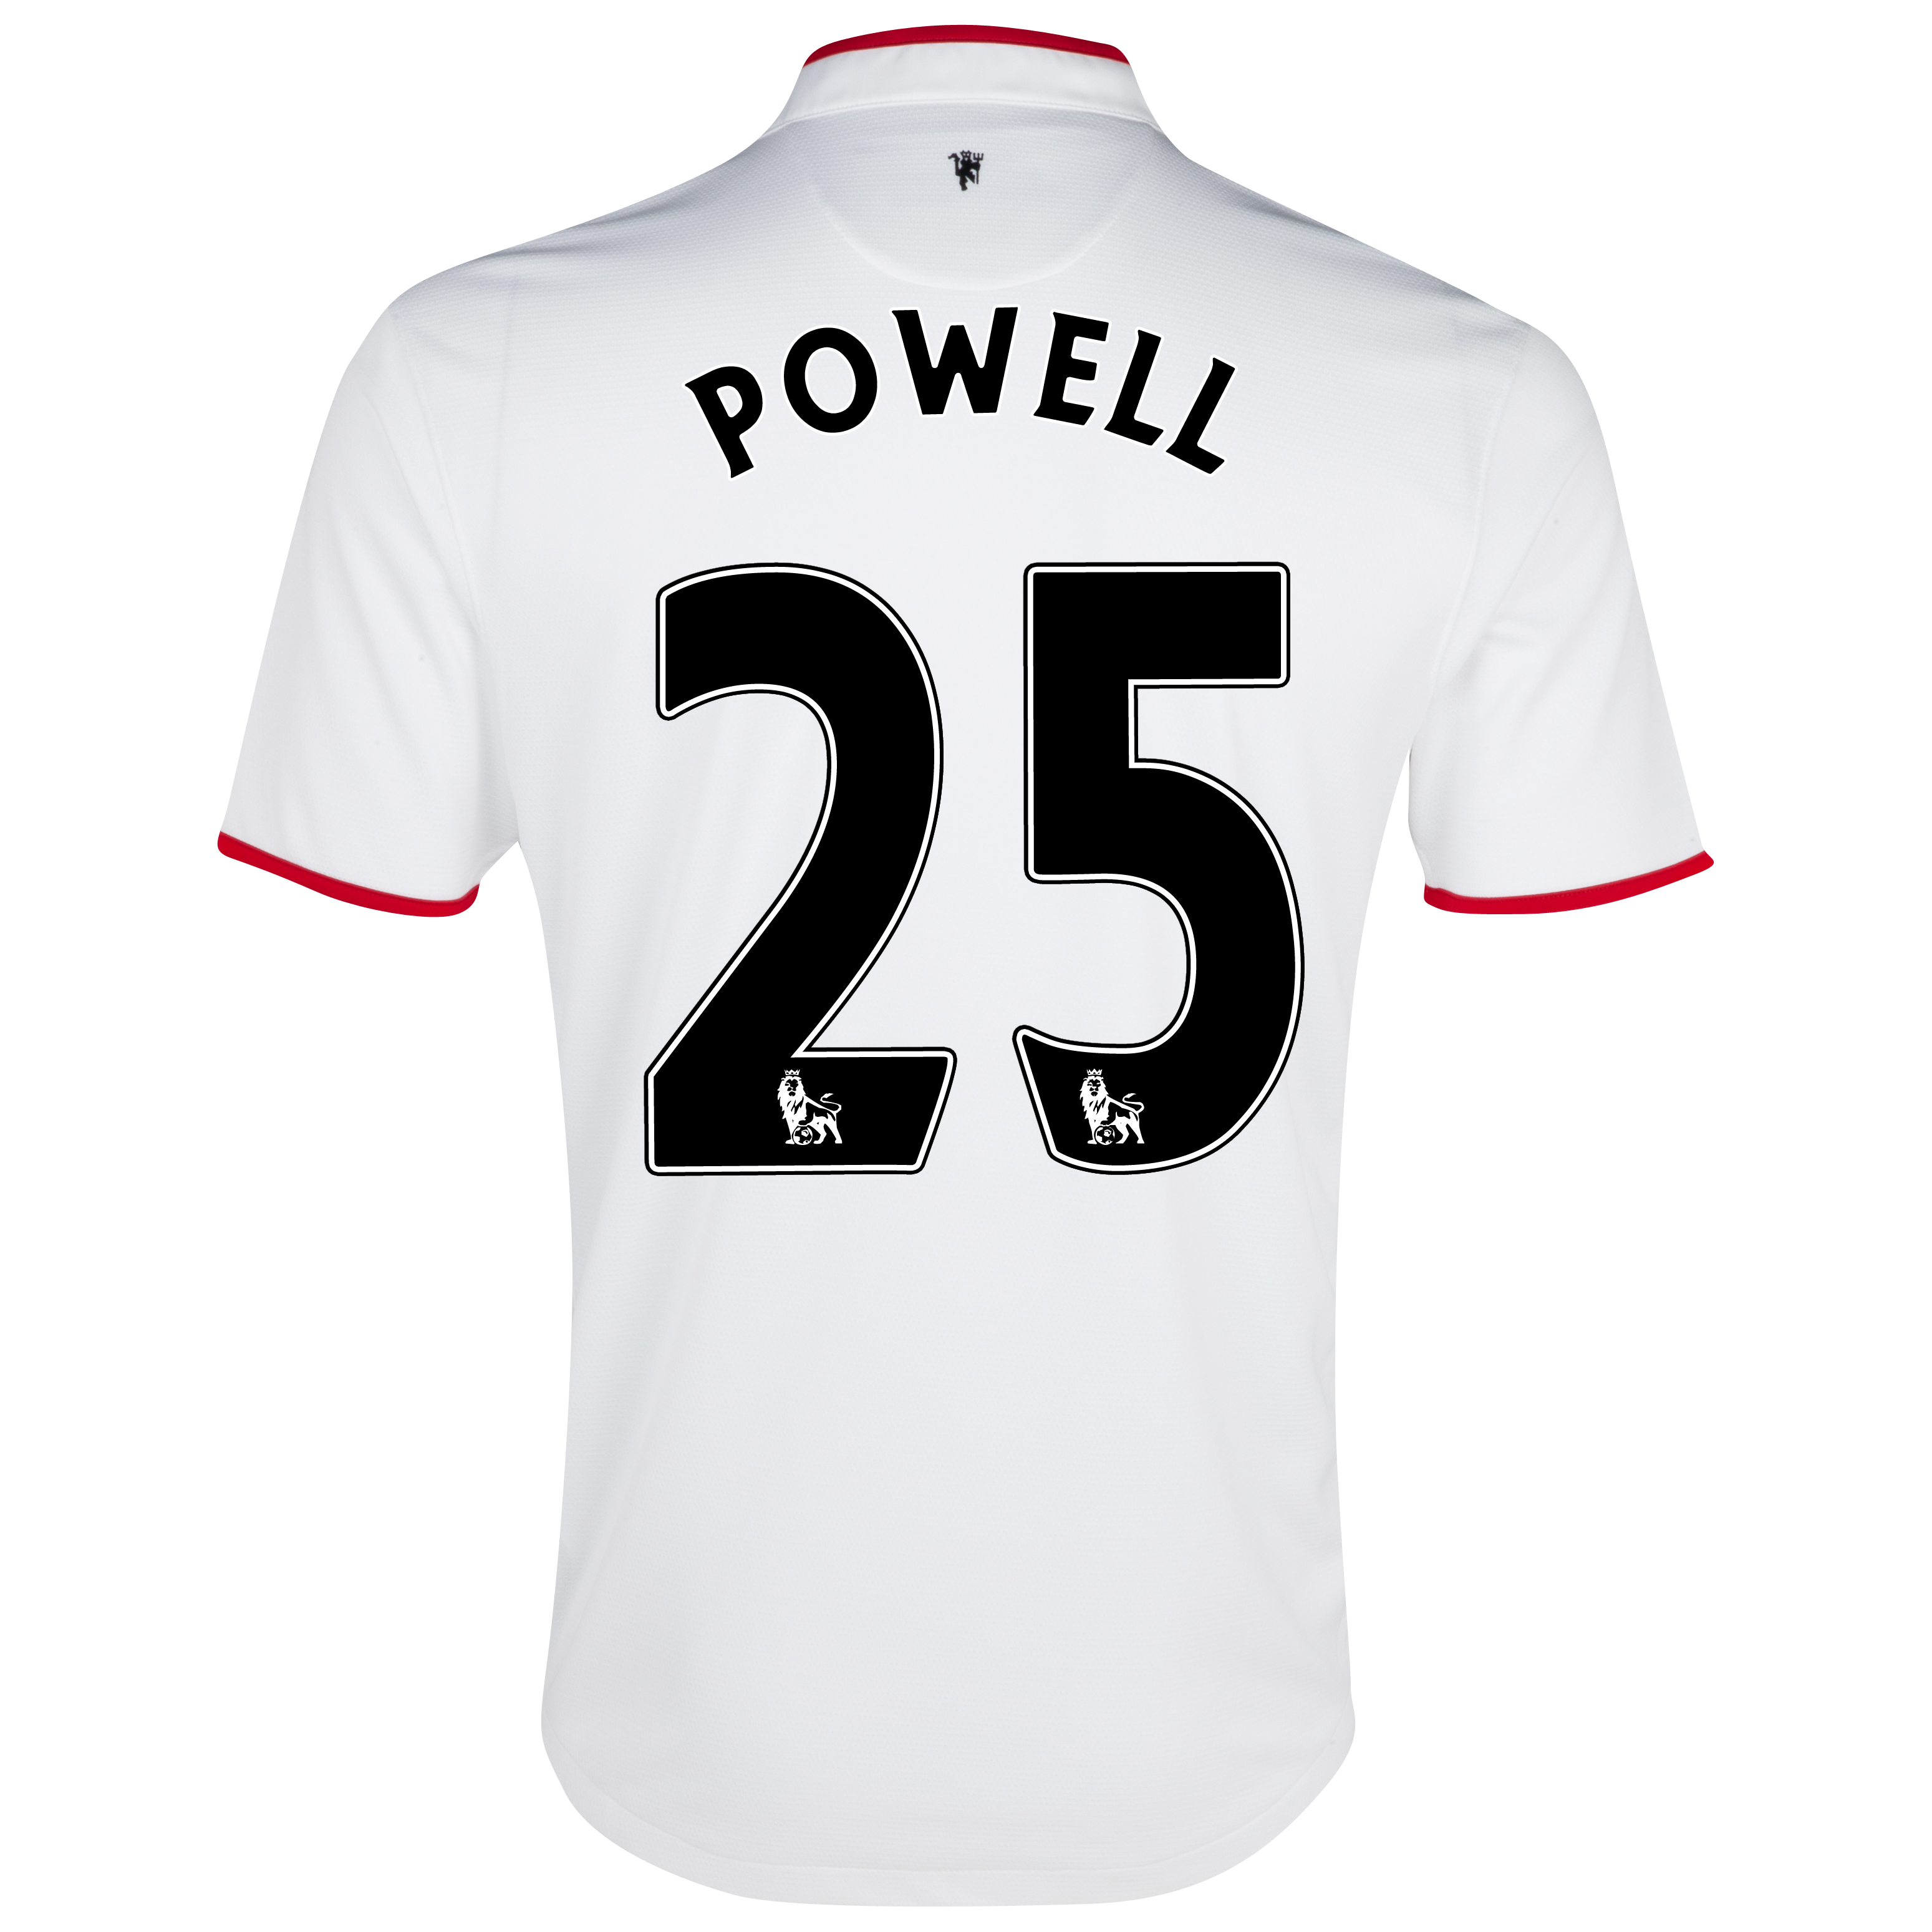 Manchester United Away Shirt 2012/13 with Powell 25 printing